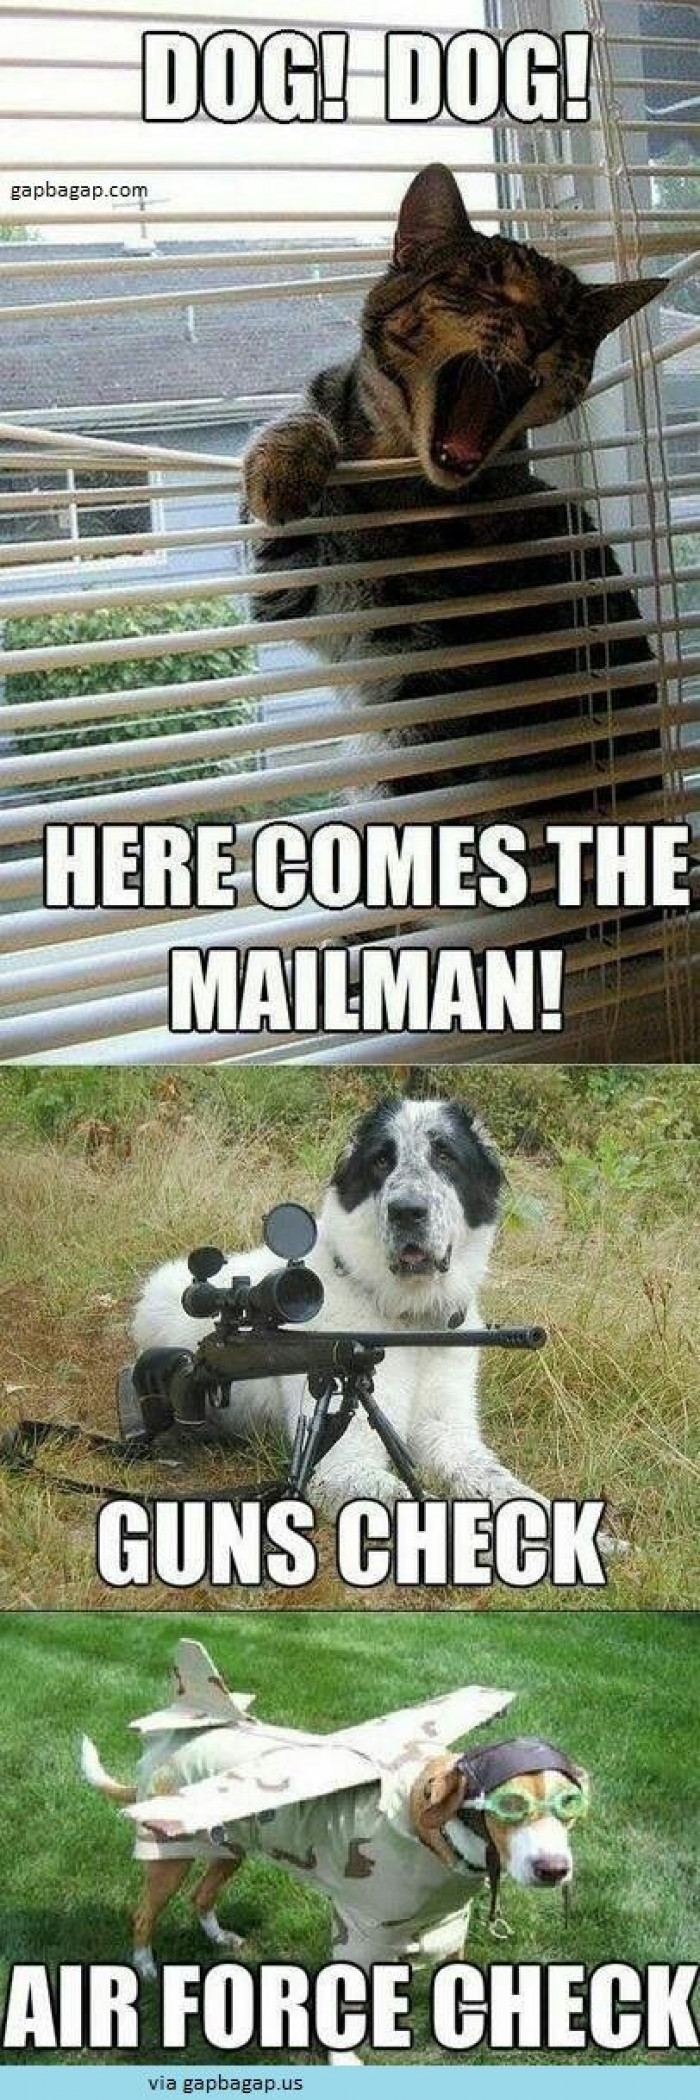 The Mailman Is Coming